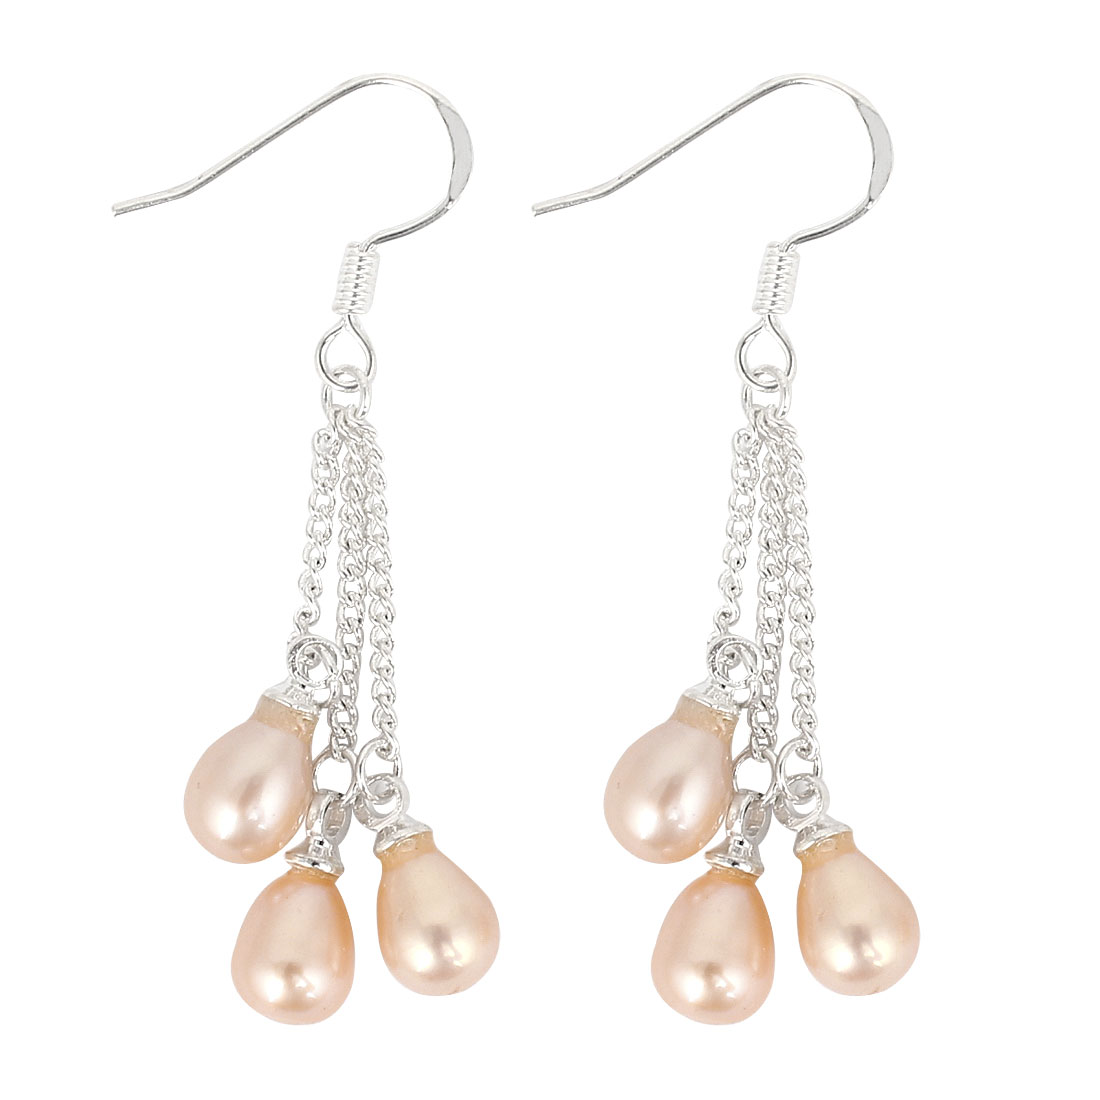 Silver Tone Metal Chain Beige Imitation Pearls Dangling Pendant Hook Earrings Pair for Woman